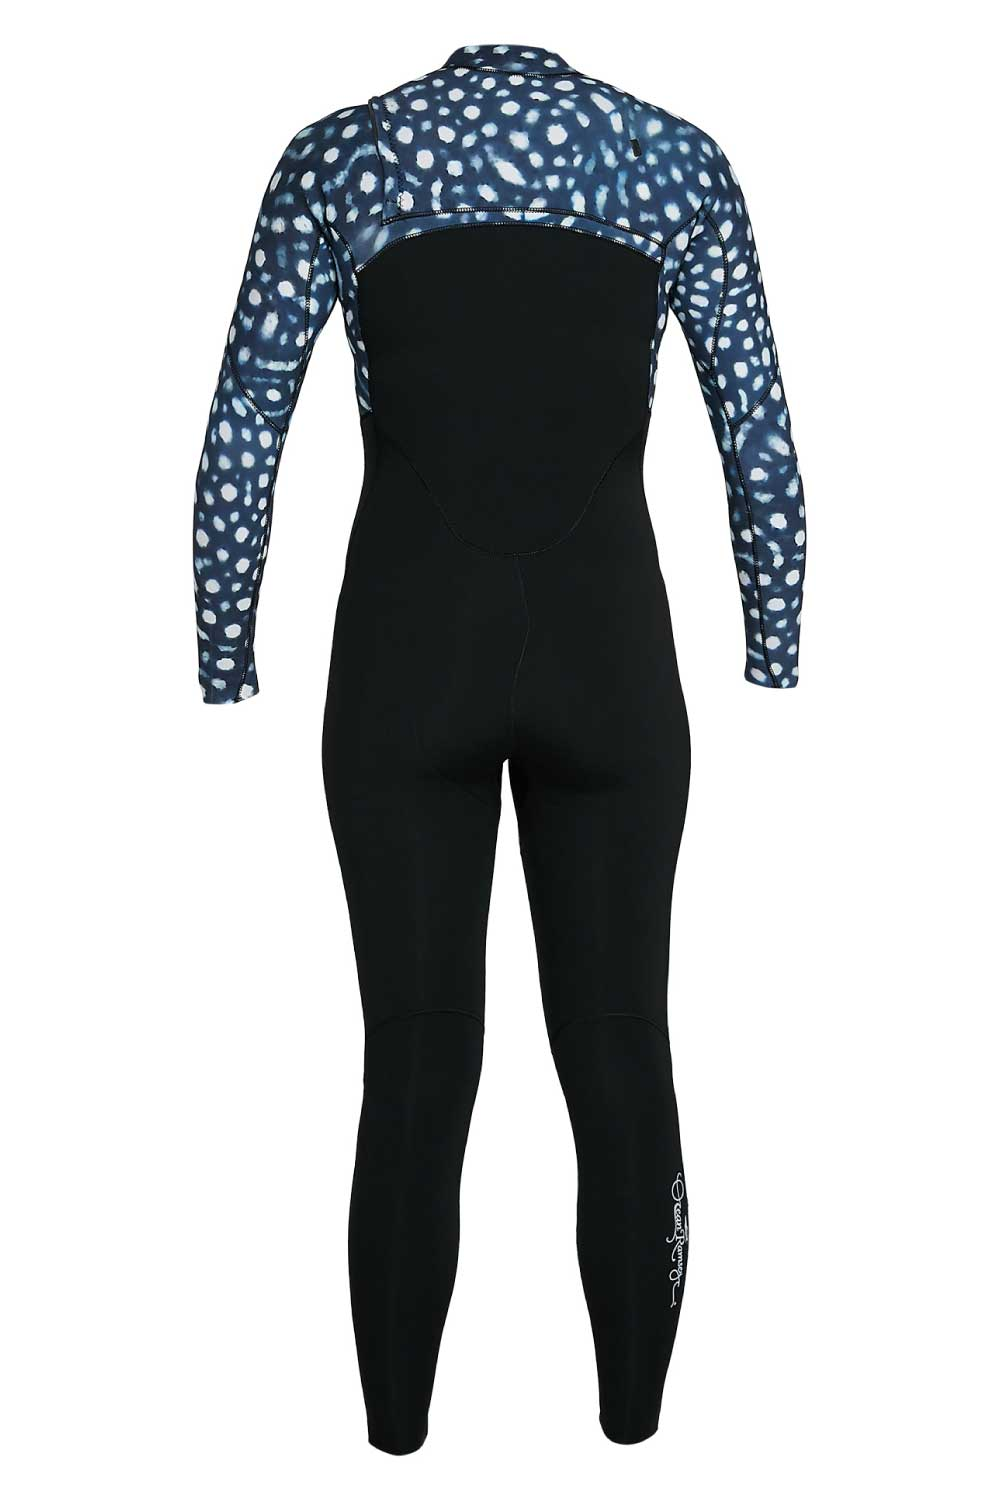 XCEL Womens COMP 3/2mm Full Suit Steamer